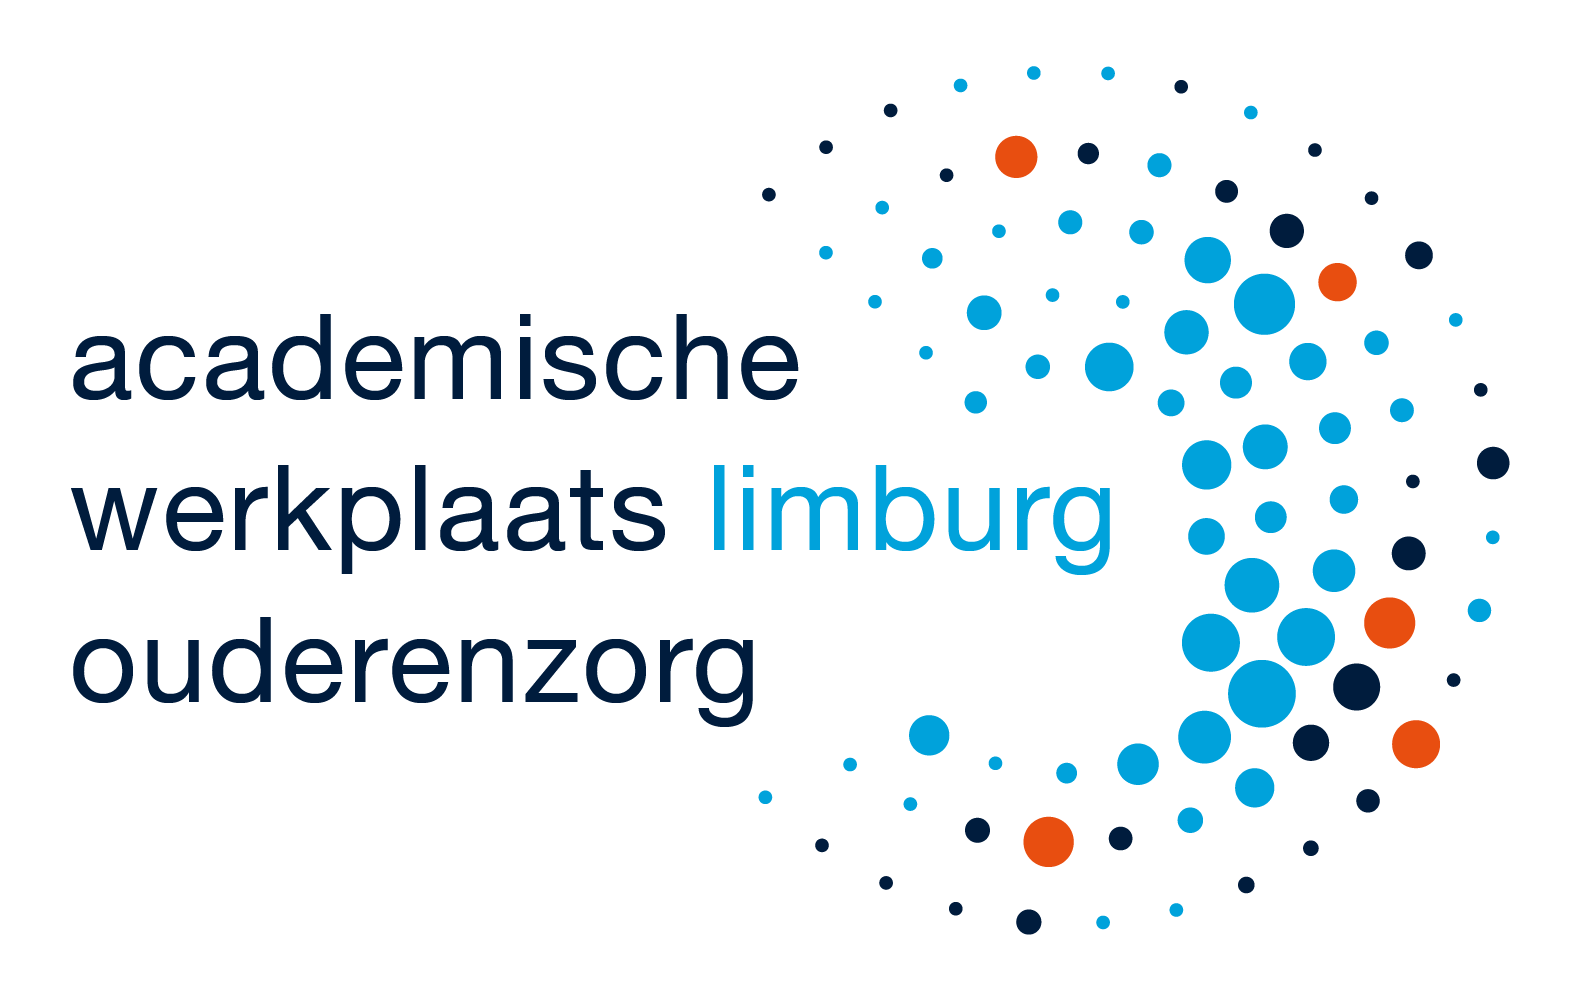 Research and innovation in elderly care now spans the whole of Limburg